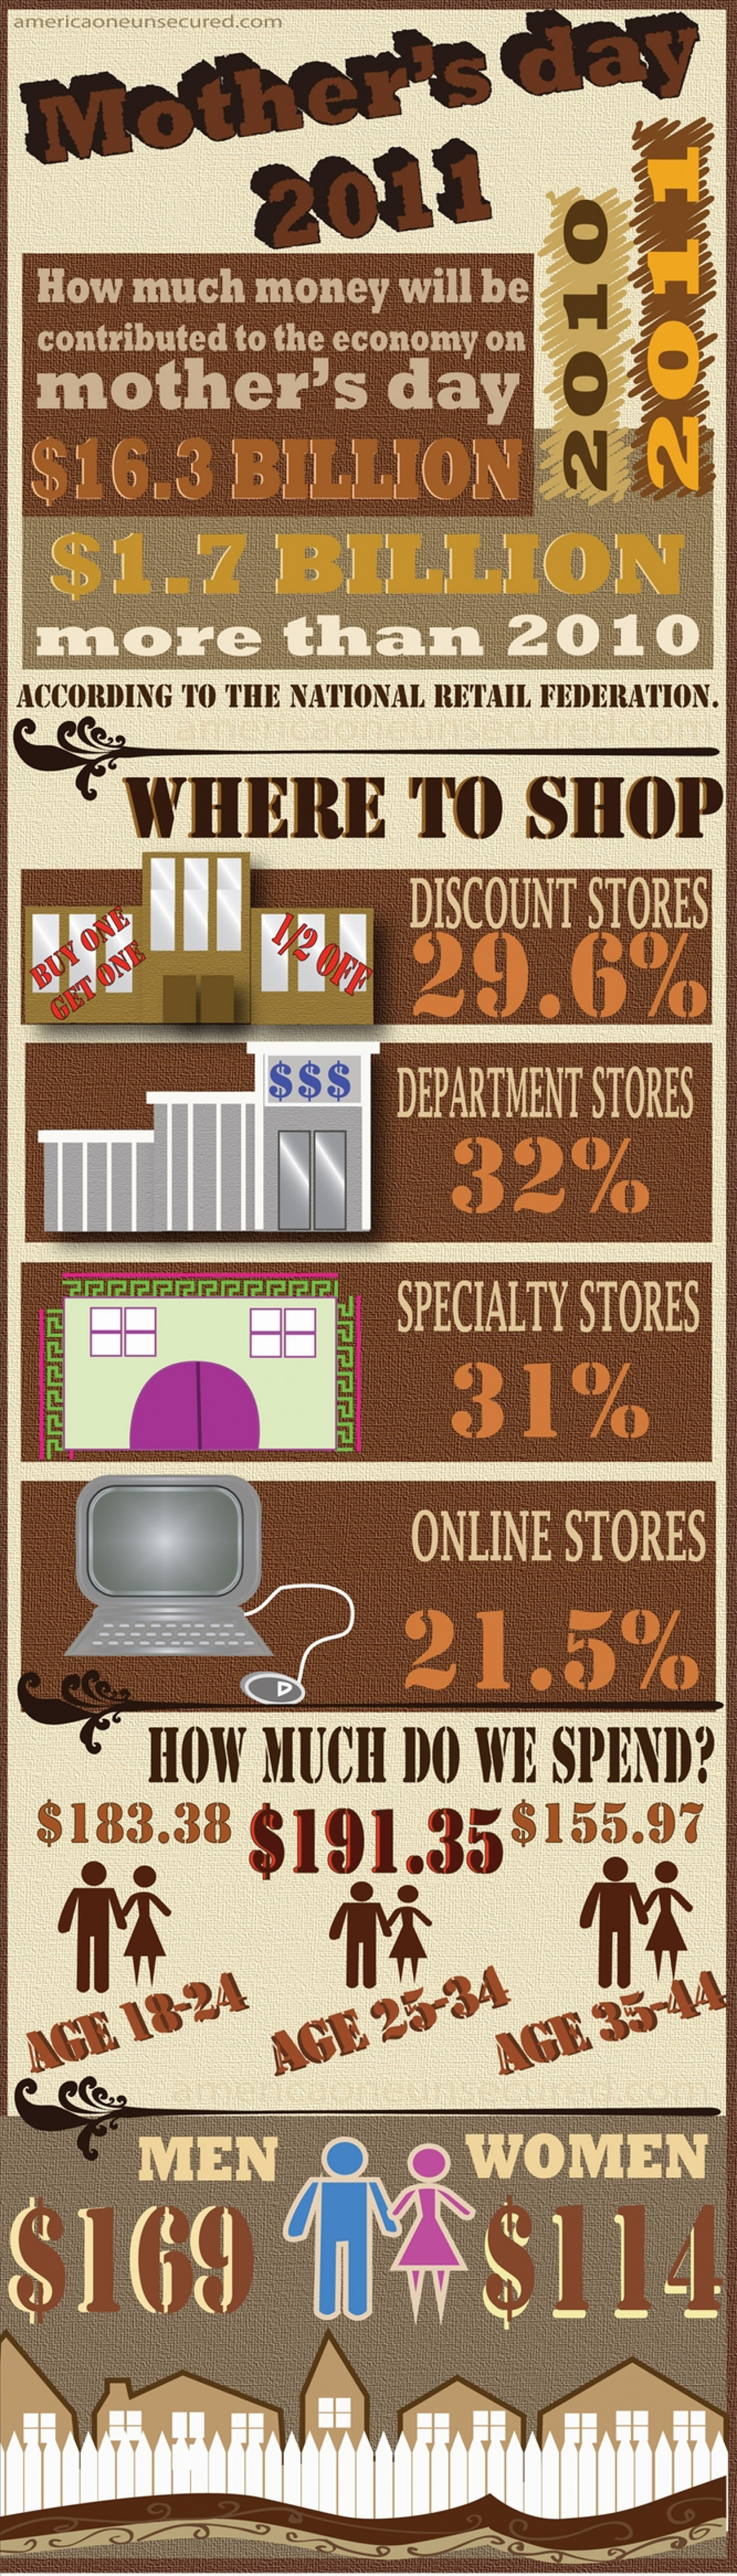 How Much Do We Spend On Mother's Day? Infographic